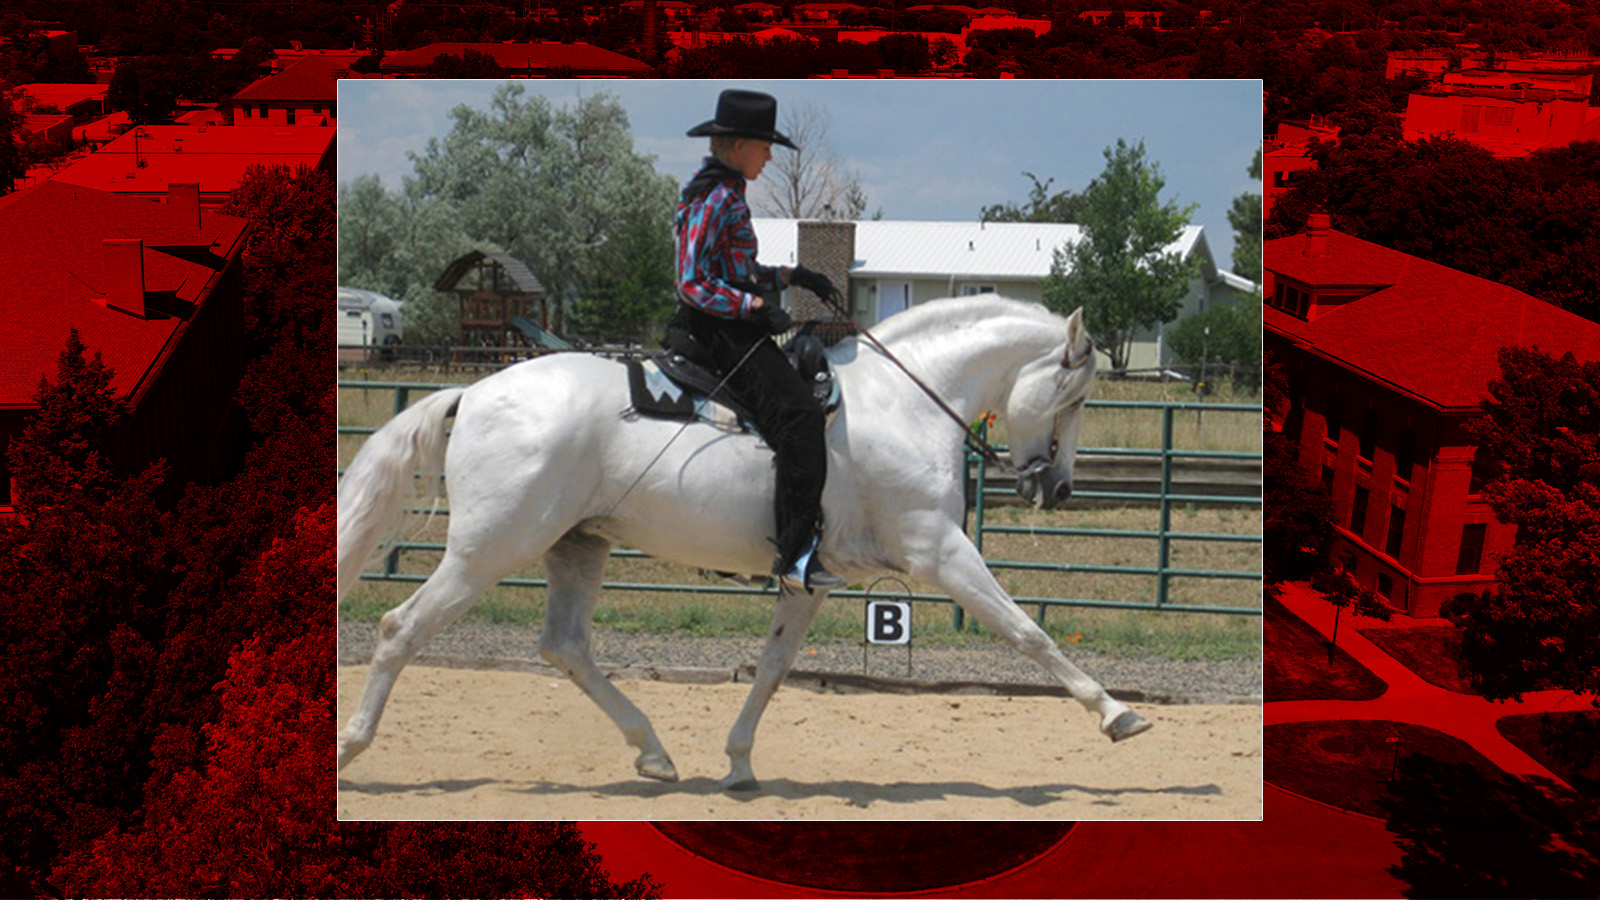 The University of Nebraska—Lincoln Department of Animal Science Extension will host its Western Dressage Clinic: What's it all About in August. Frances Carbonnel of Castle Rock, Colo. will the the featured speaker, a United States Dressage Federation Bronze, Silver and Gold medalist.